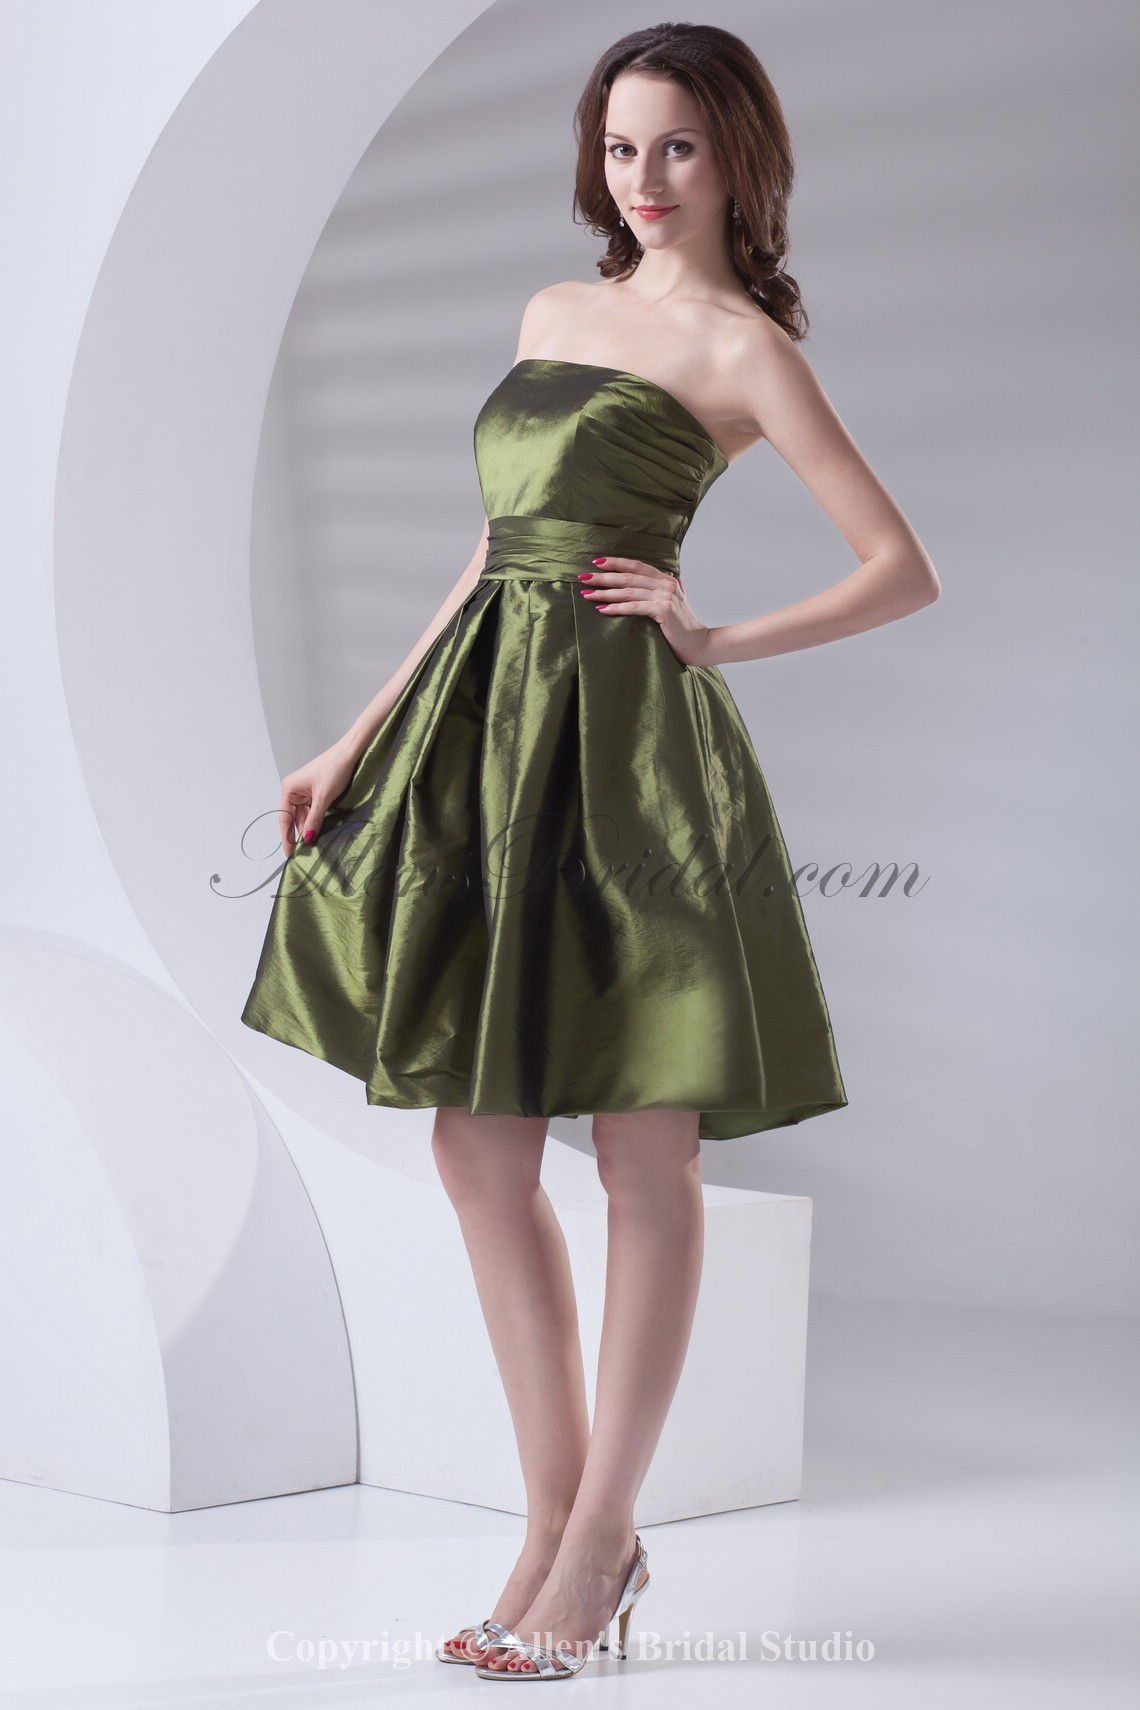 /408-3261/taffeta-strapless-neckline-a-line-knee-length-cocktail-dress.jpg